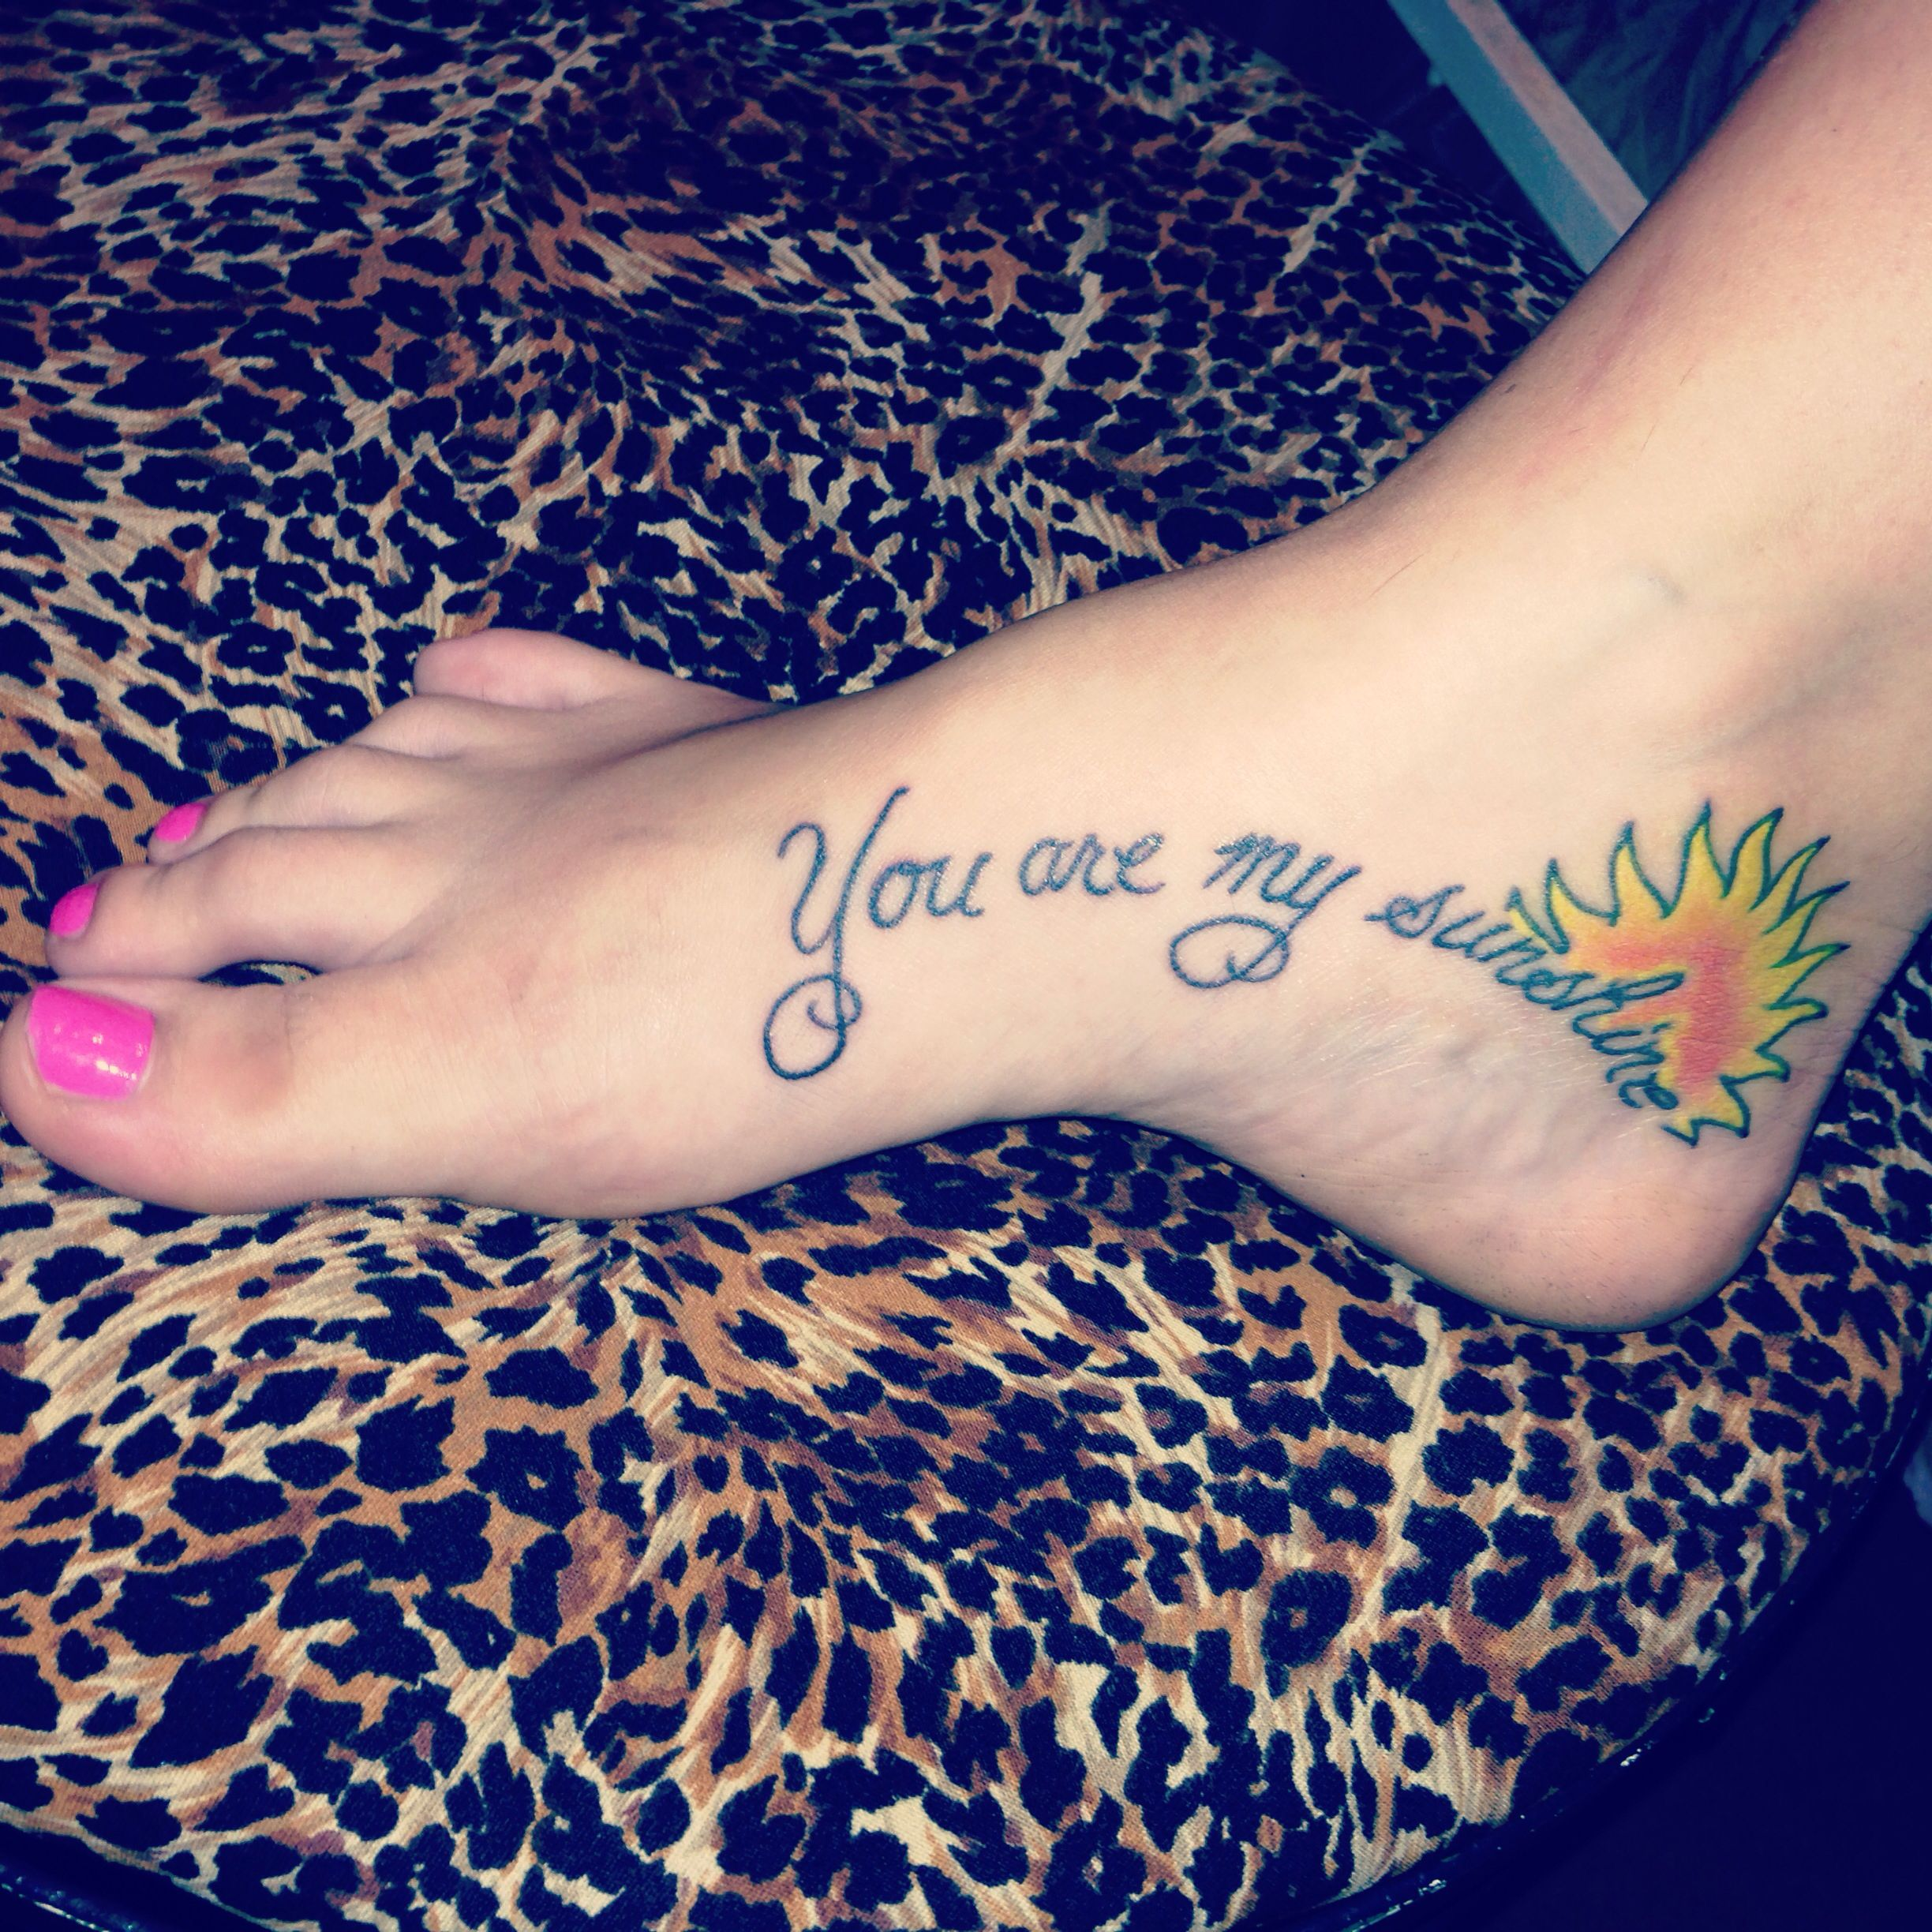 My second tattoo You are my sunshine ☀ My nana would sing this